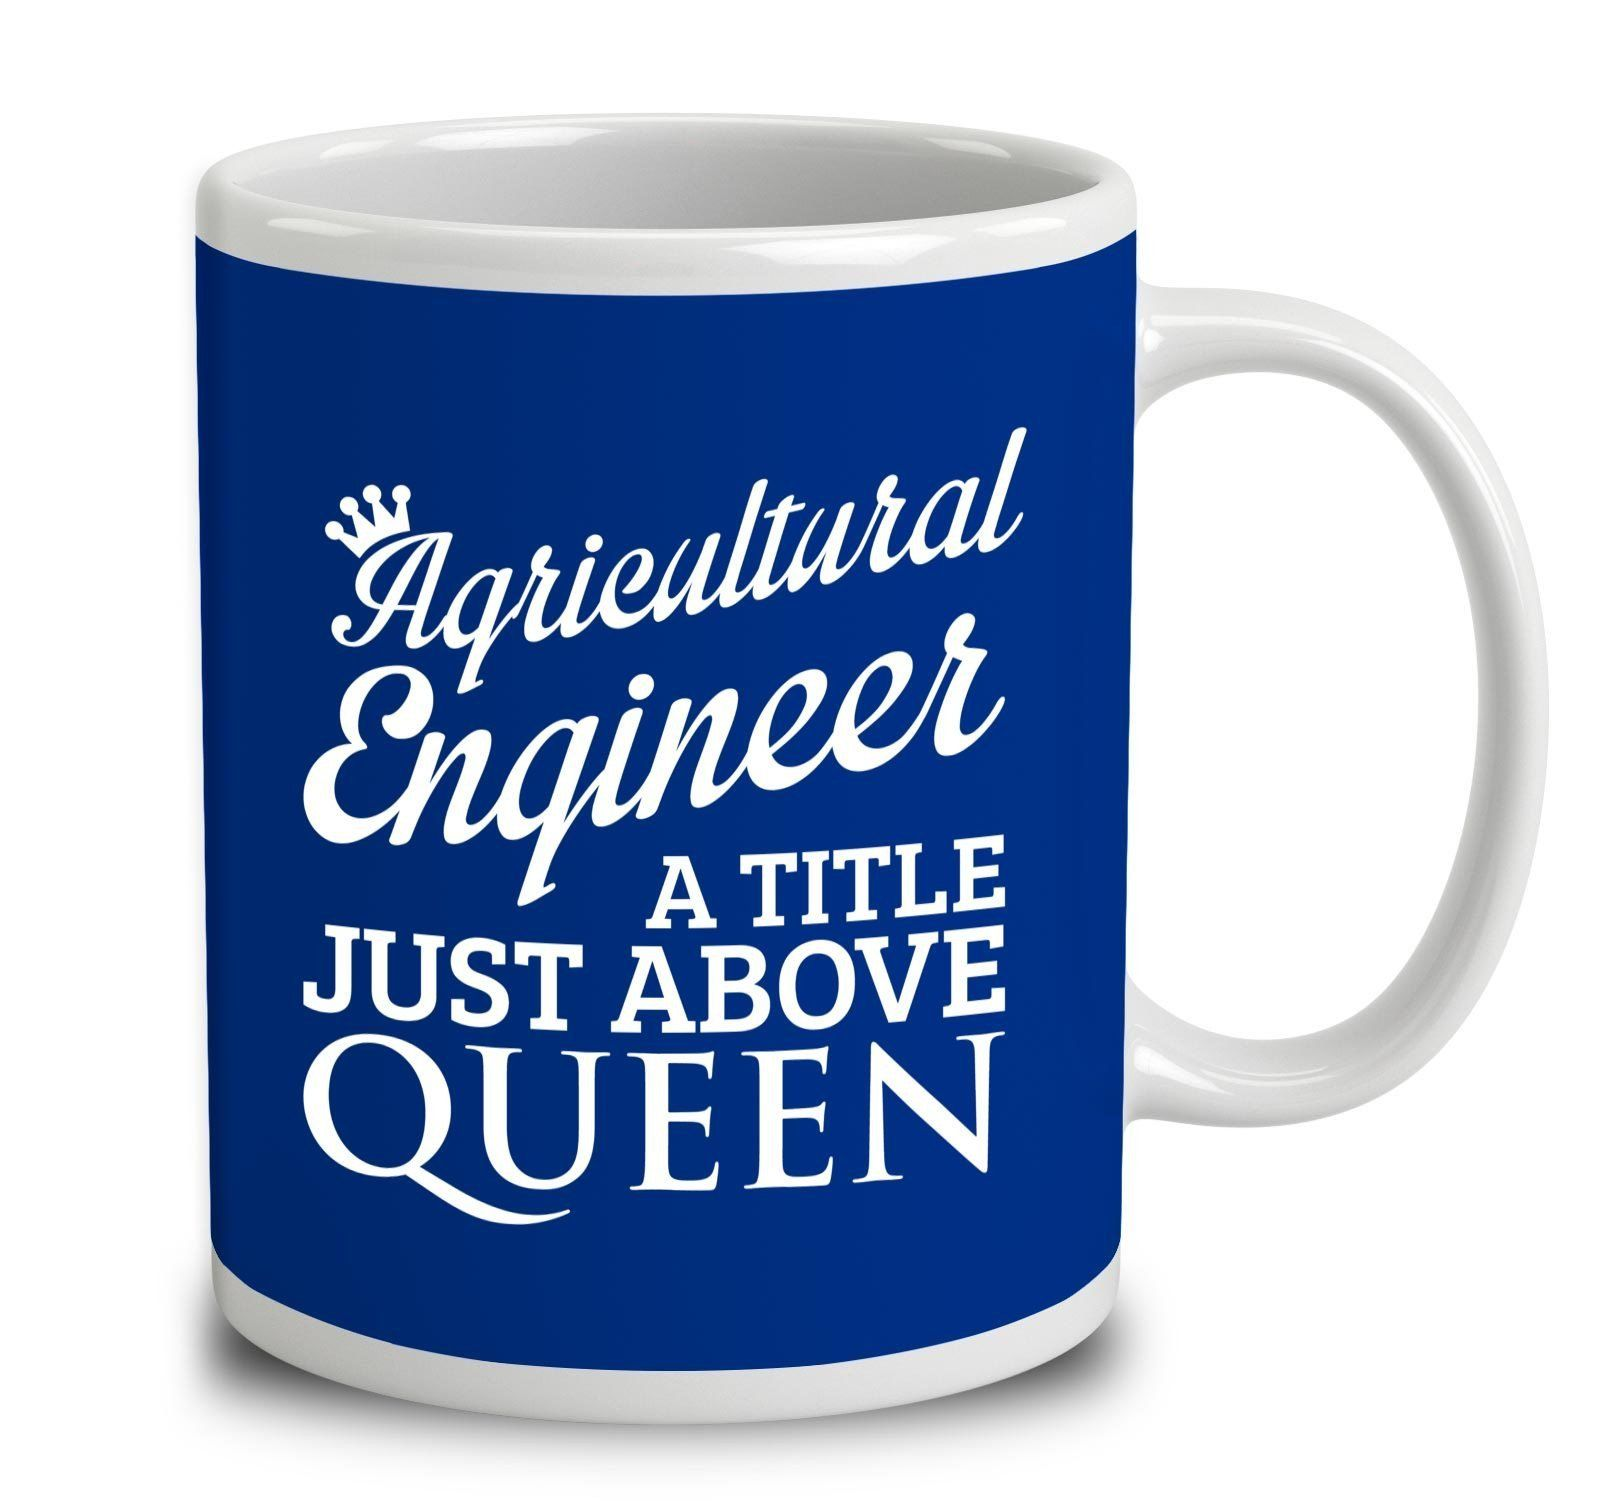 Agricultural Engineer A Title Just Above Queen Queen